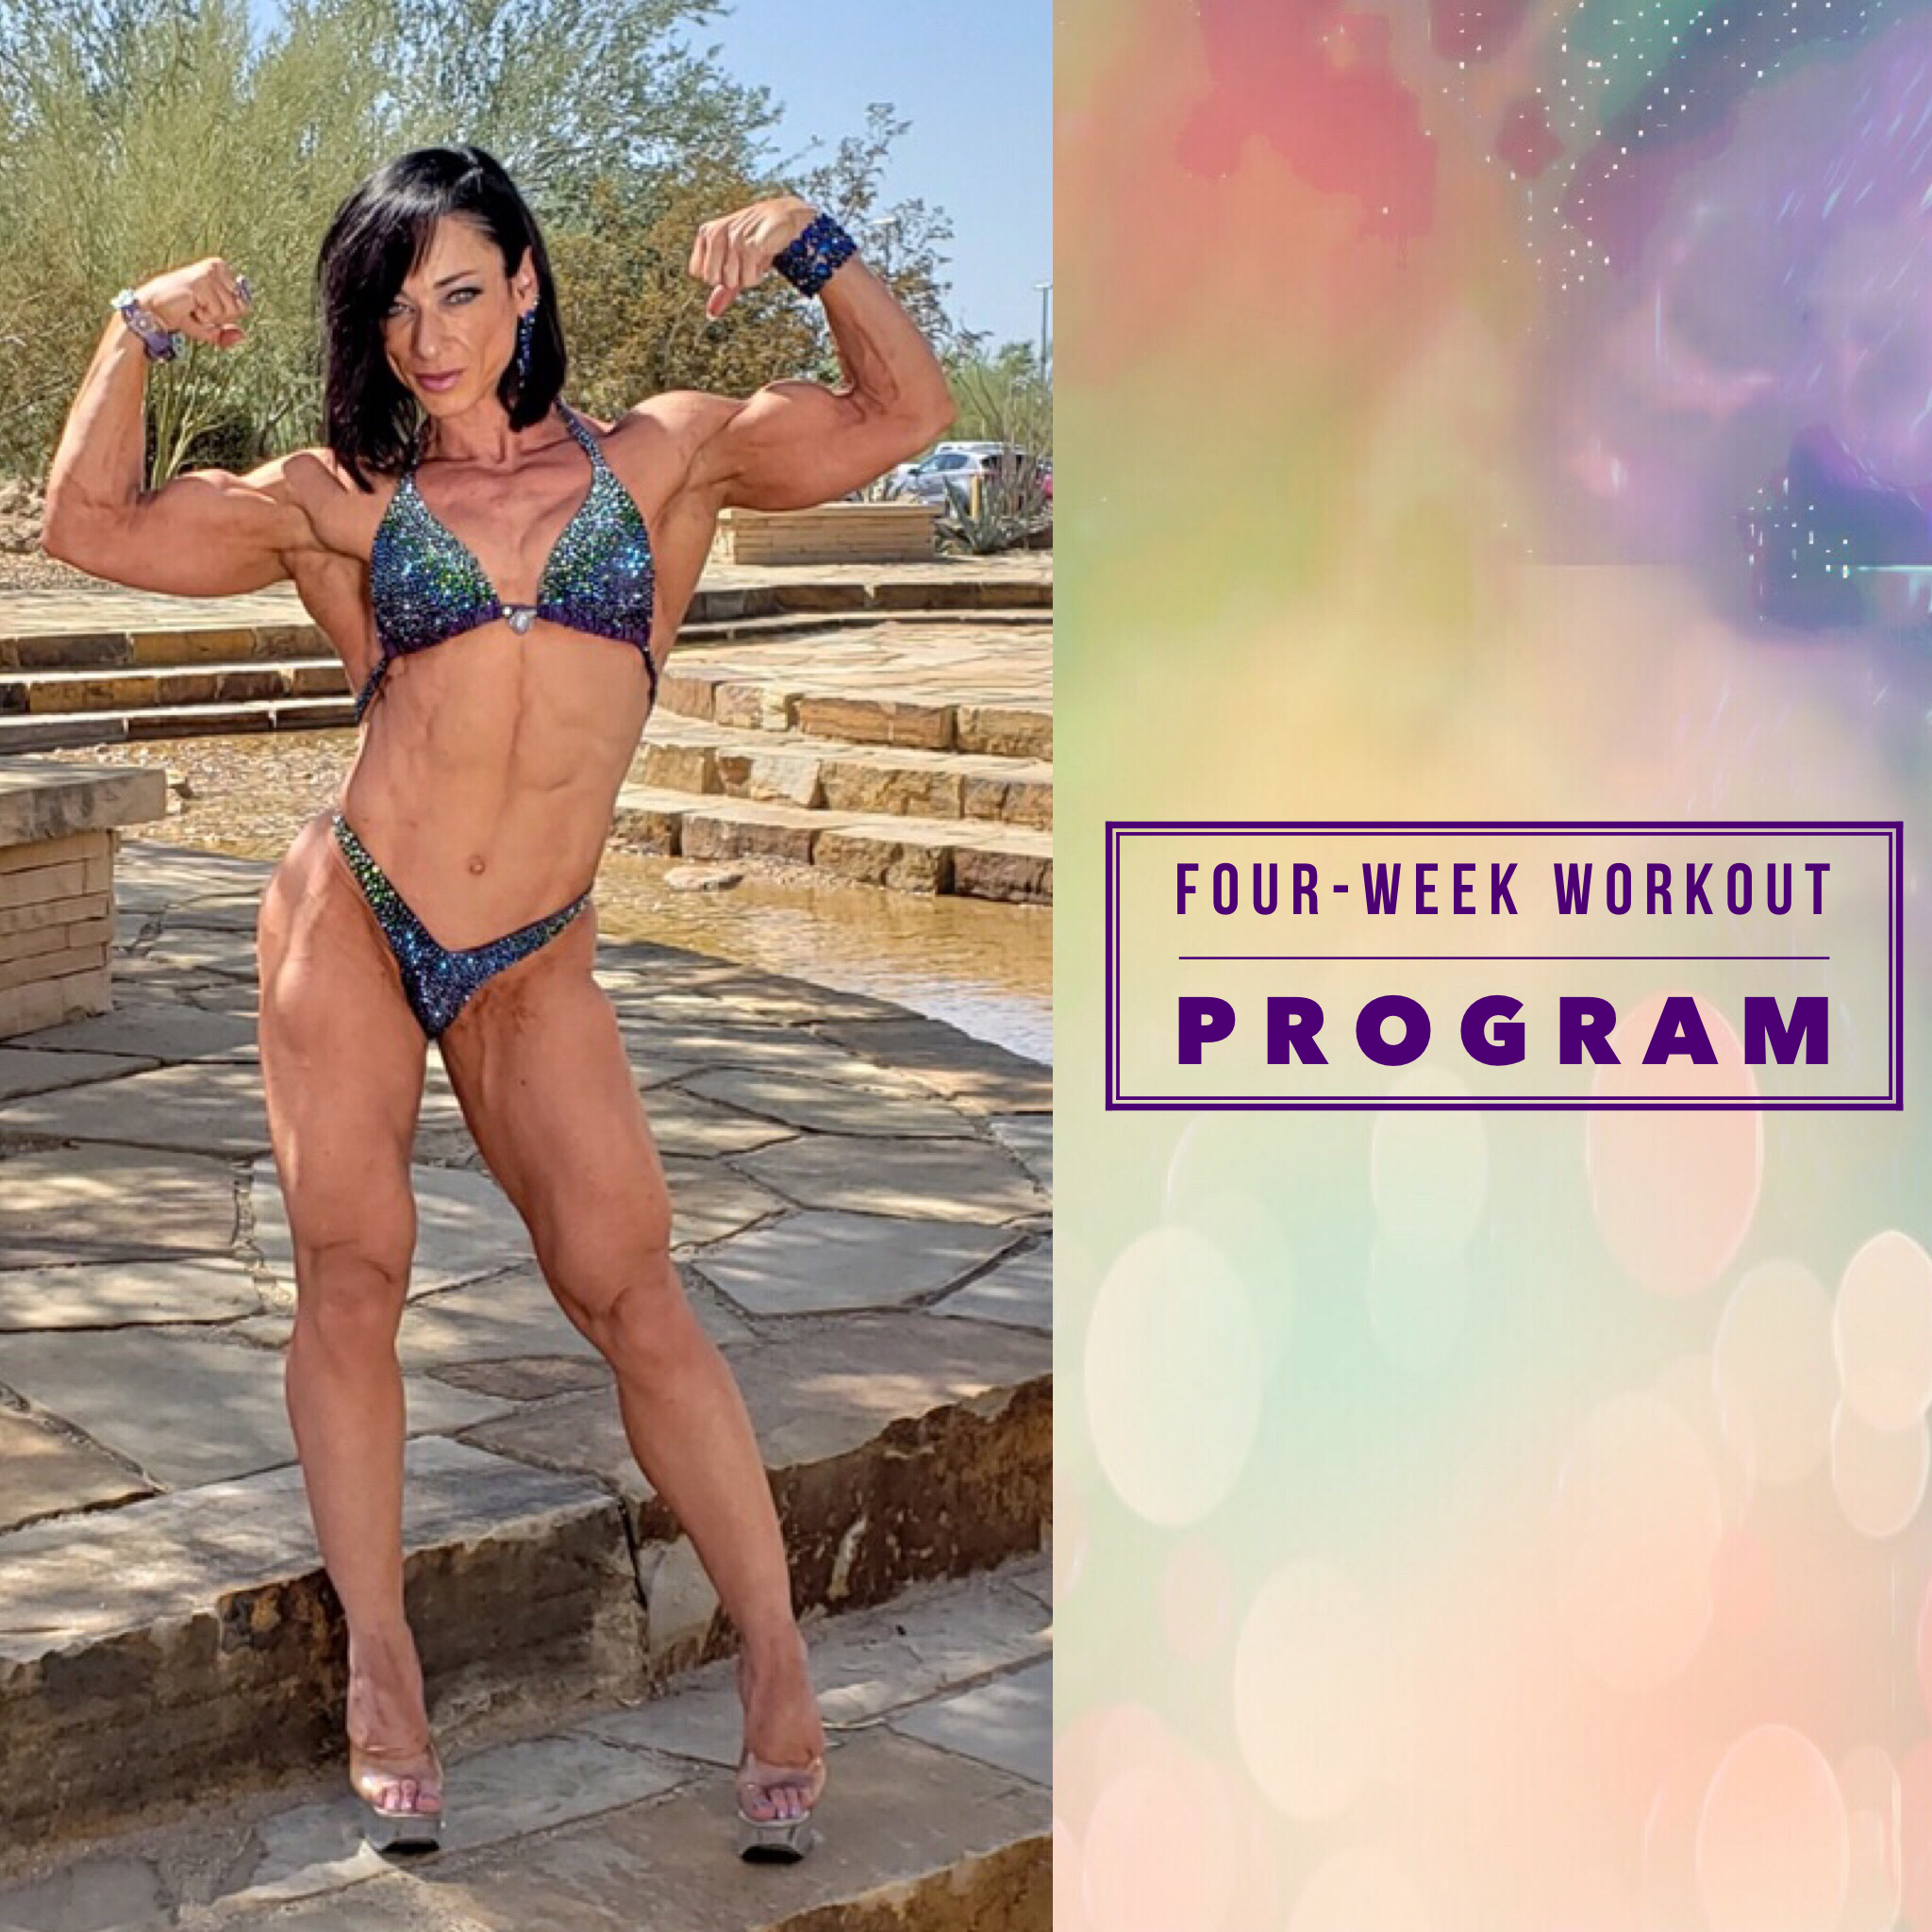 Basic Workout Plan Pre Made In Booklet Format 4 Days Week Not Customized Consultation And Check Ins Not Included Store Jodi Leigh Miller Ela venceu a categoria leve da equipe universo 2007, o evento npc só. jodi leigh miller